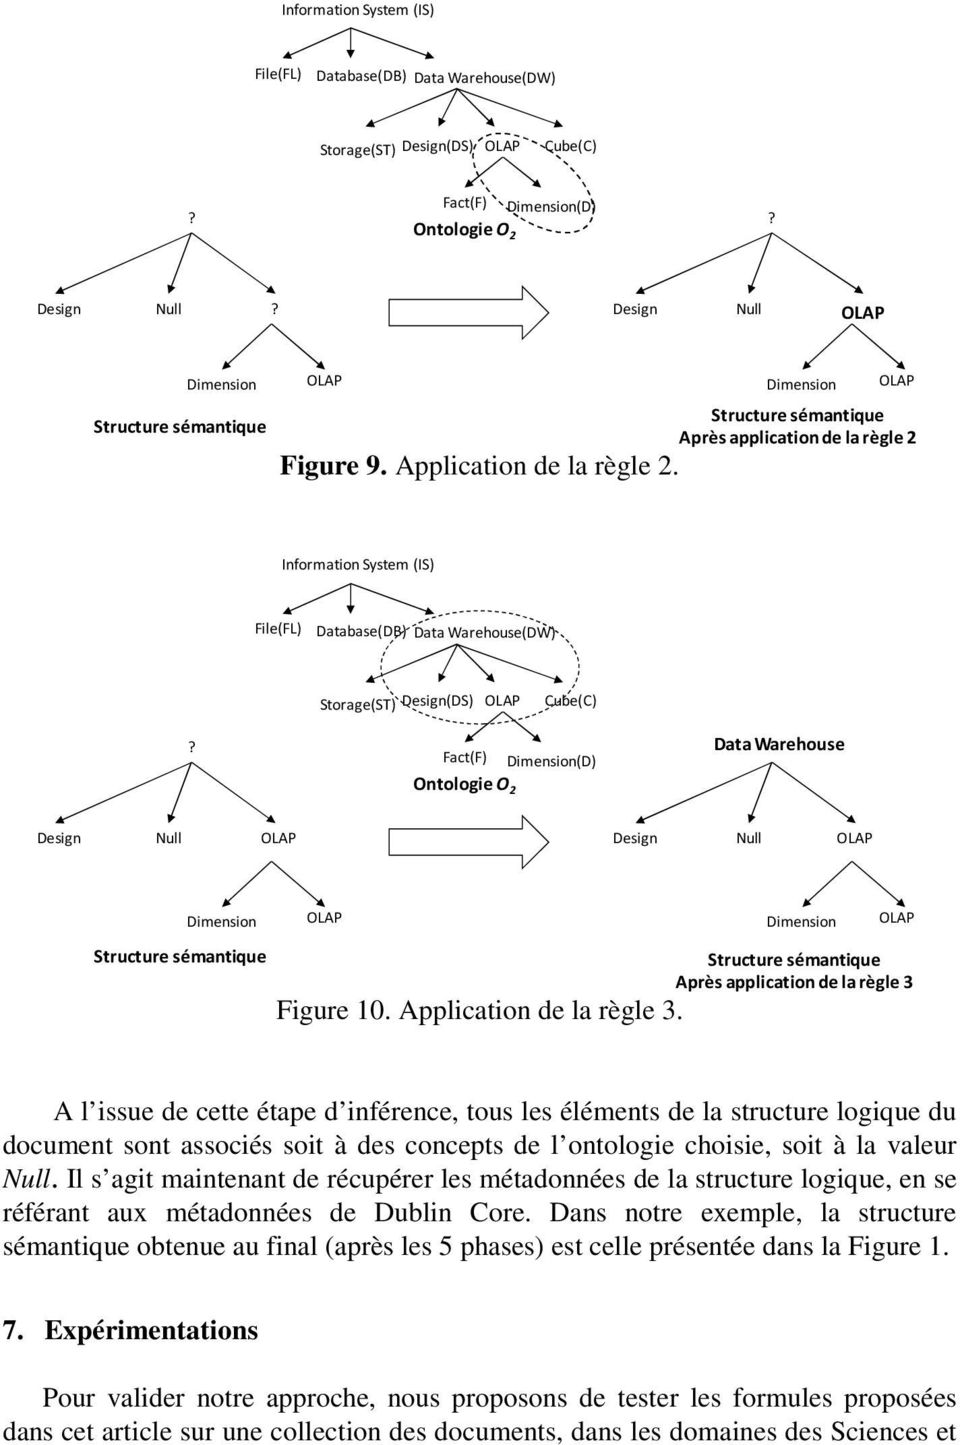 Fact(F) Dimension(D) Ontologie O 2 Data Warehouse Design Null Design Null Dimension Structure sémantique Figure 10. Application de la règle 3.